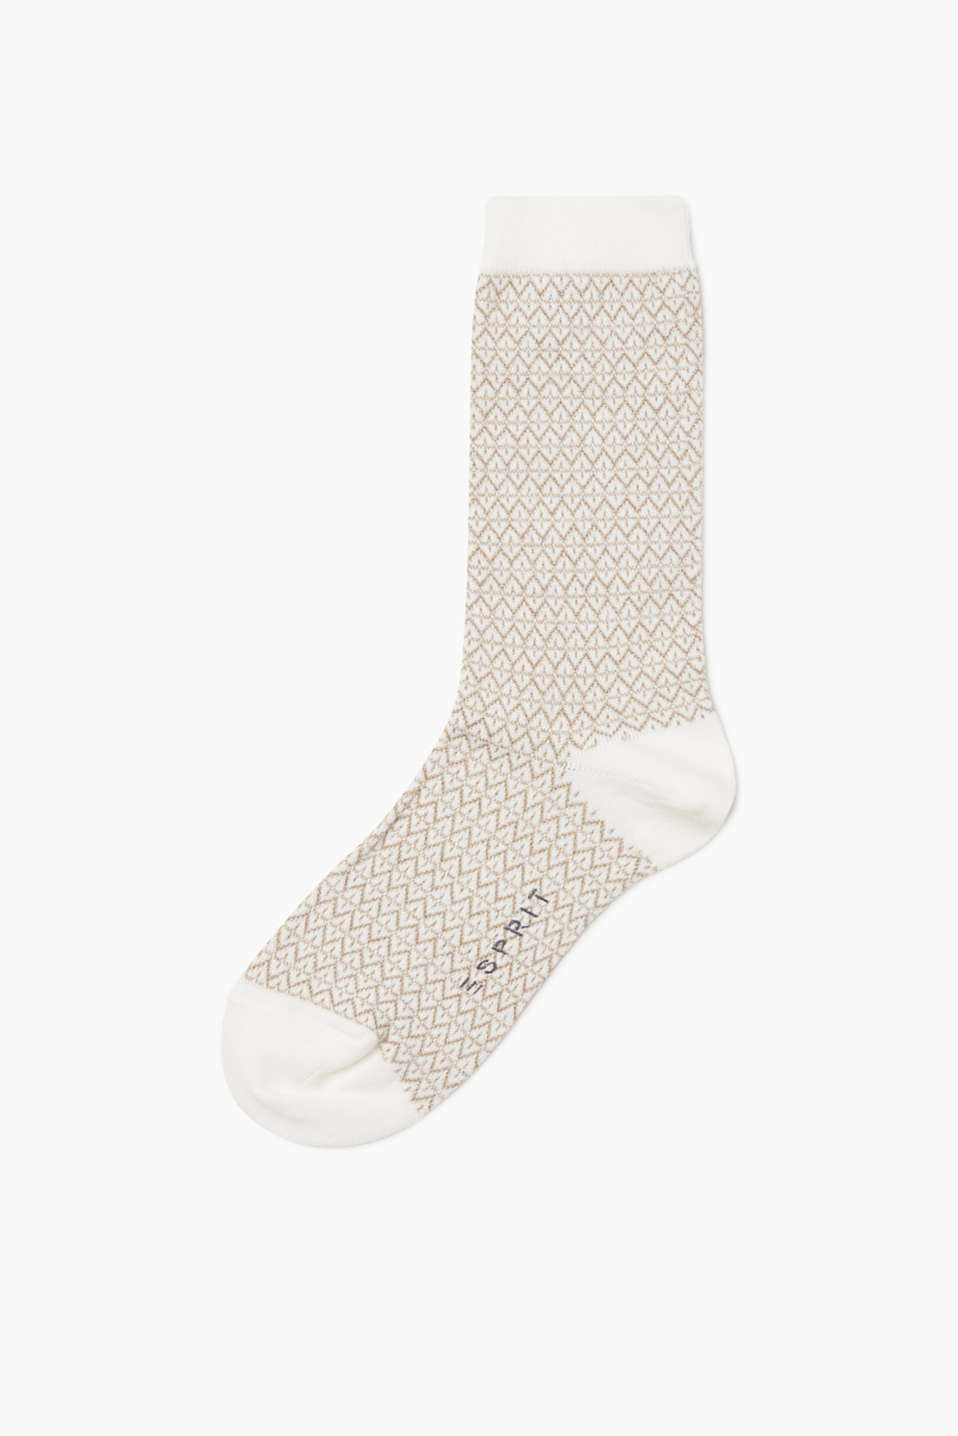 Esprit - Festive socks with a percentage of wool